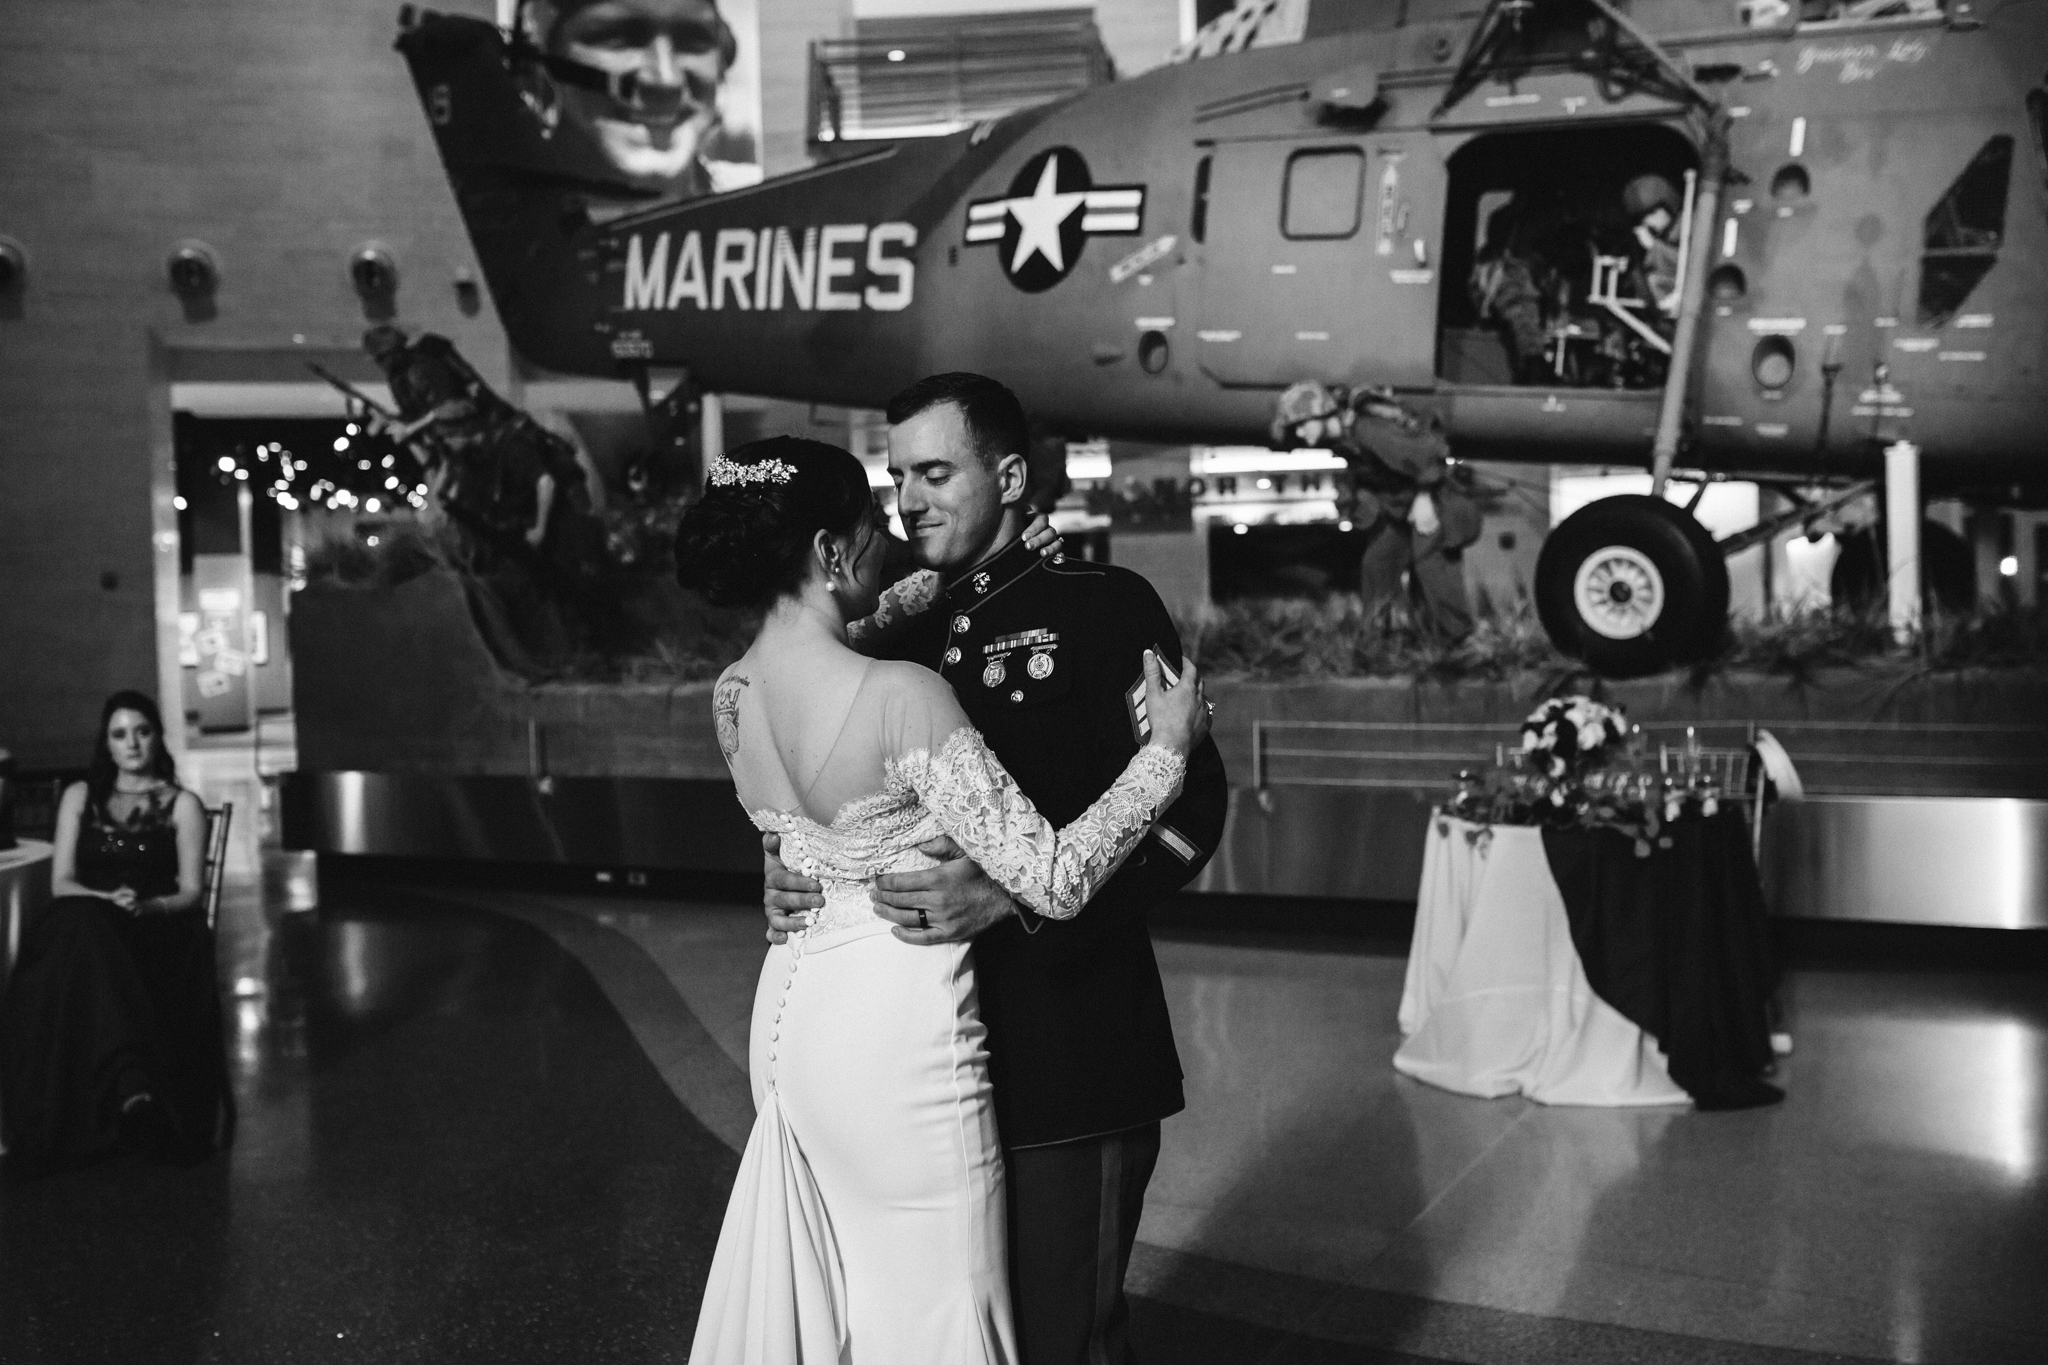 solinsky_wedding_national_museum_of_marine_corp-35.jpg